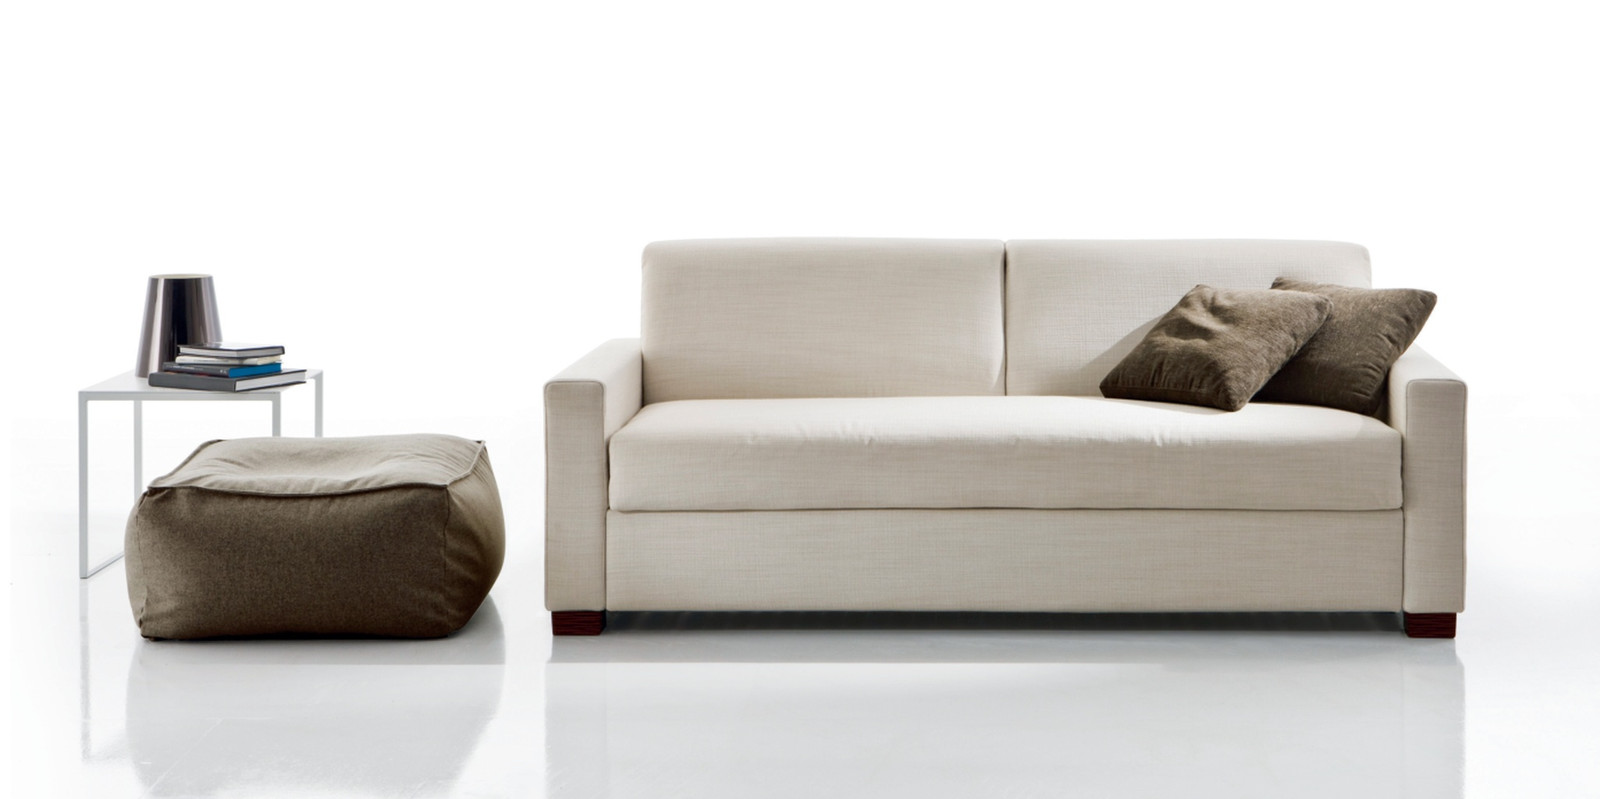 Bettsofa Schubiger Bett Sofa Schubiger Mbel Bettsofa Selina With Bett Sofa Bett